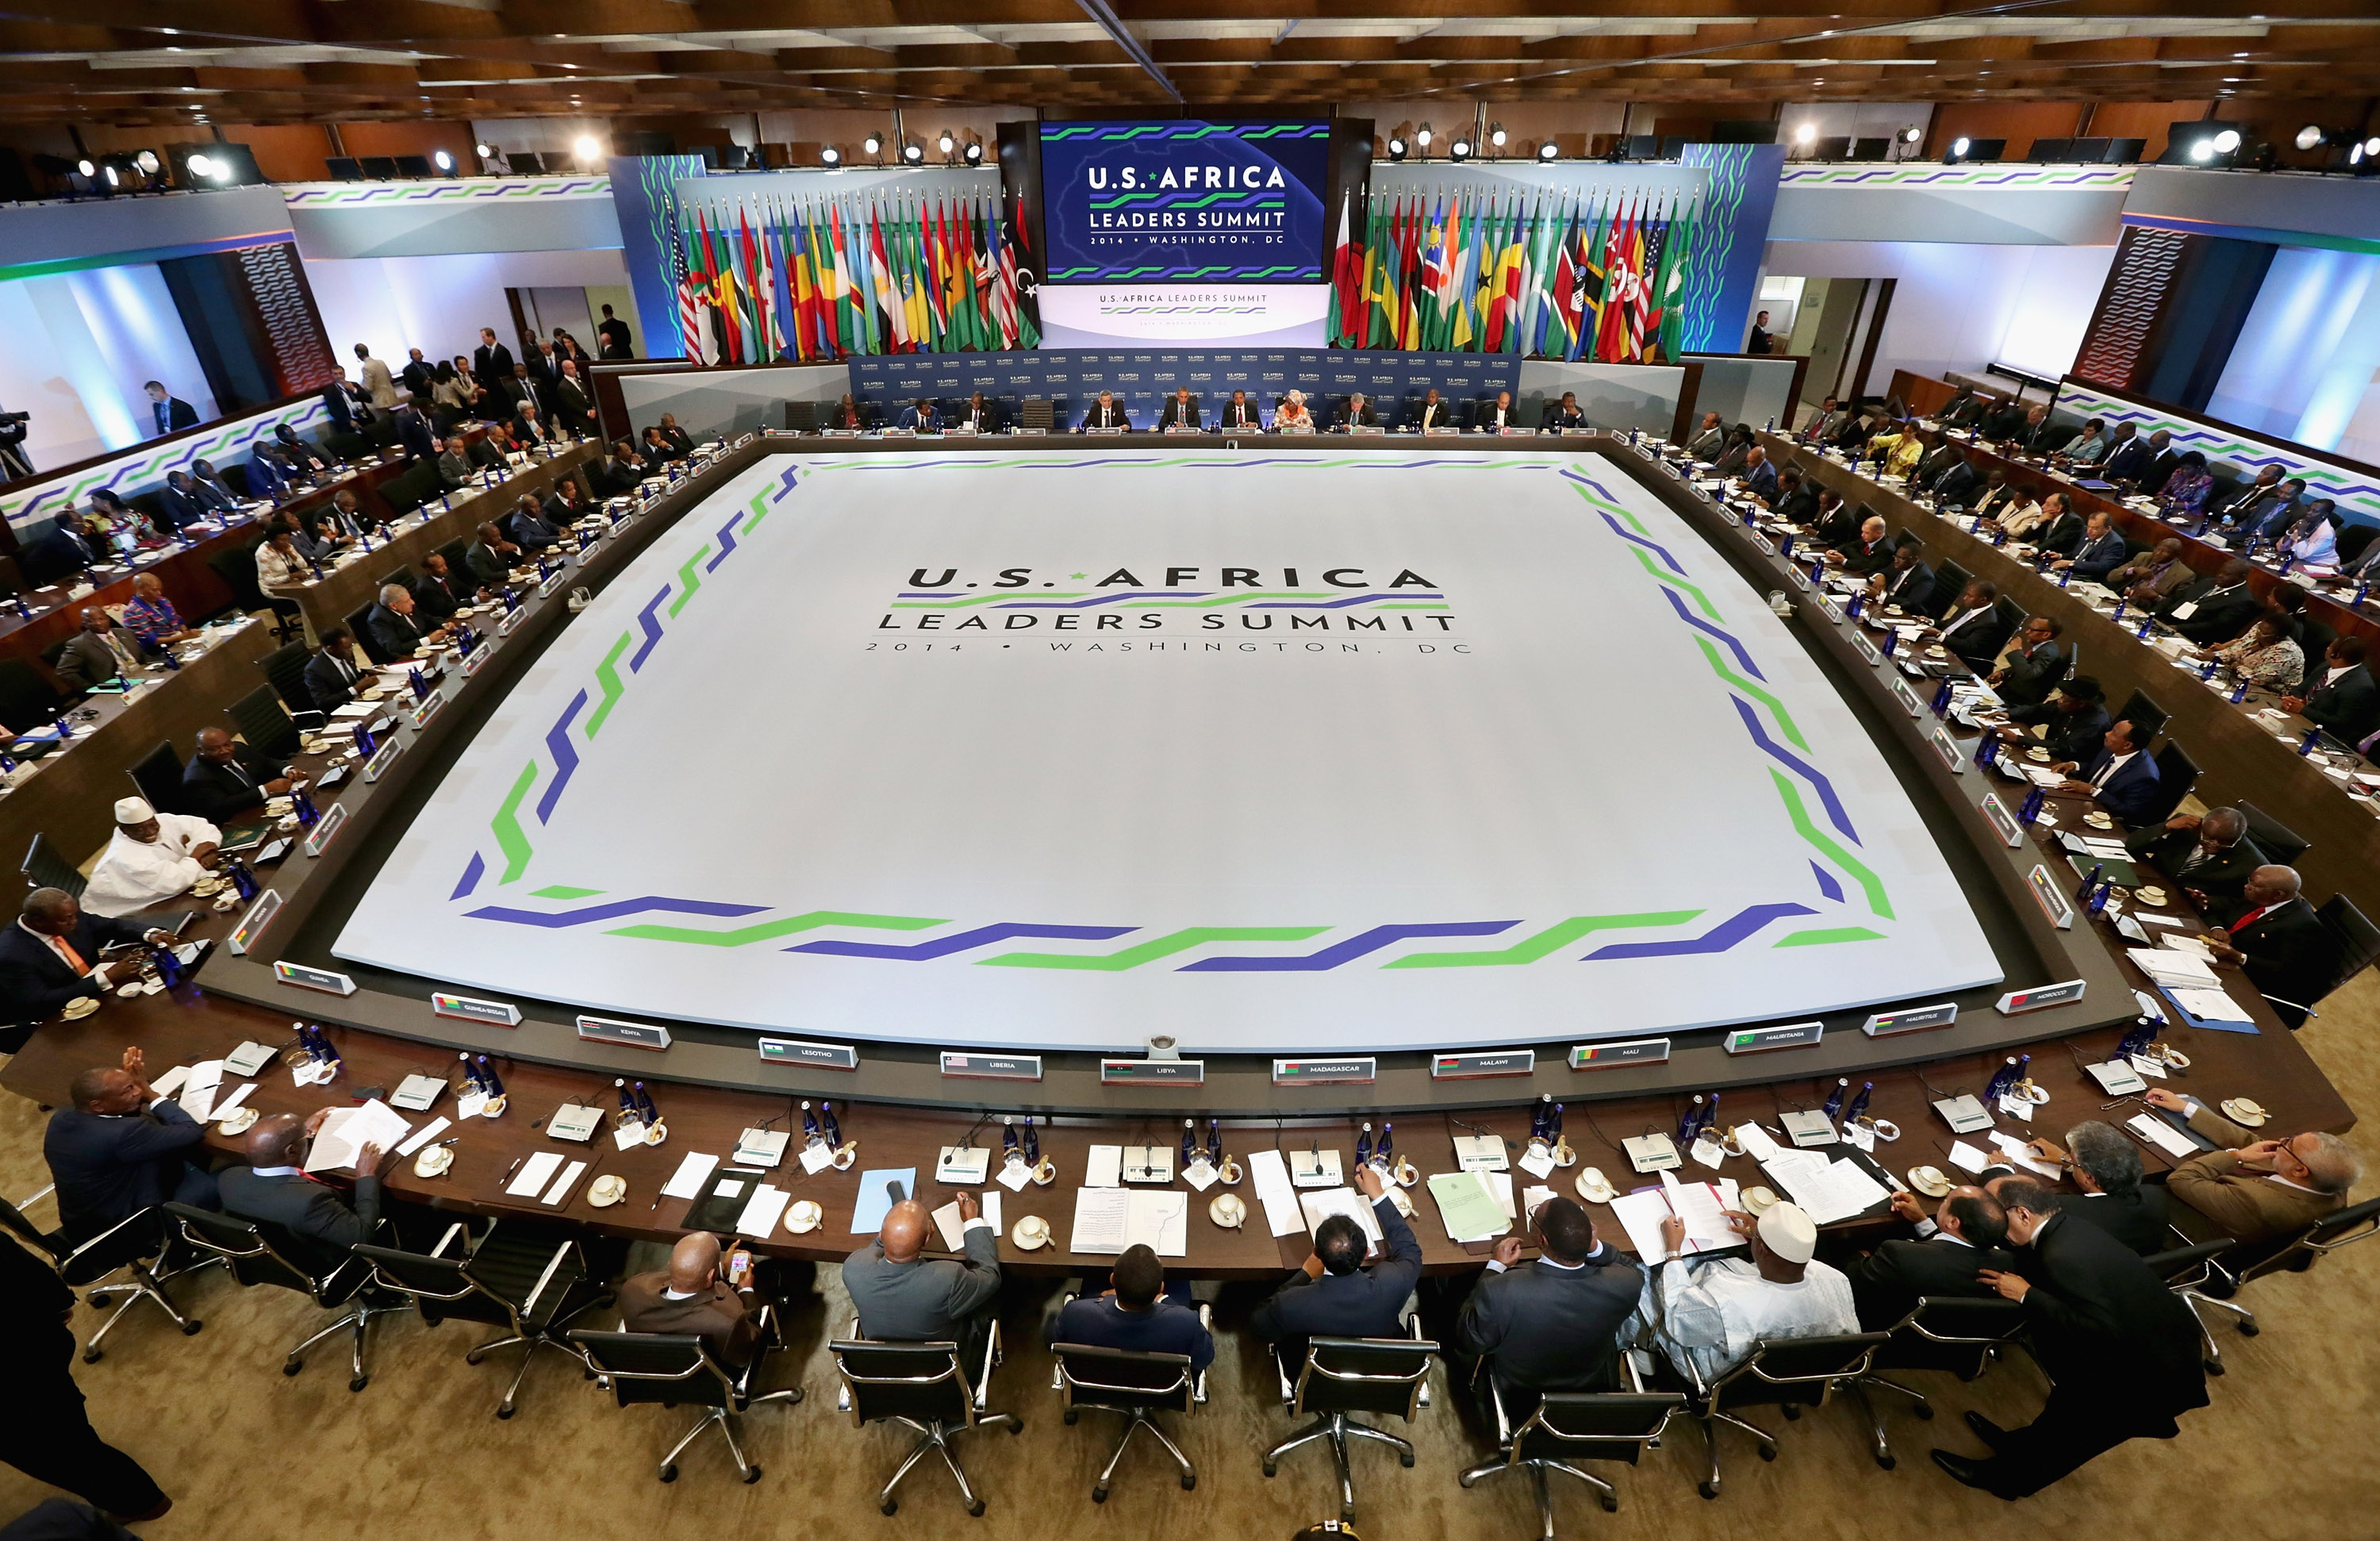 US–Africa Summit in the Age of Political Insanity